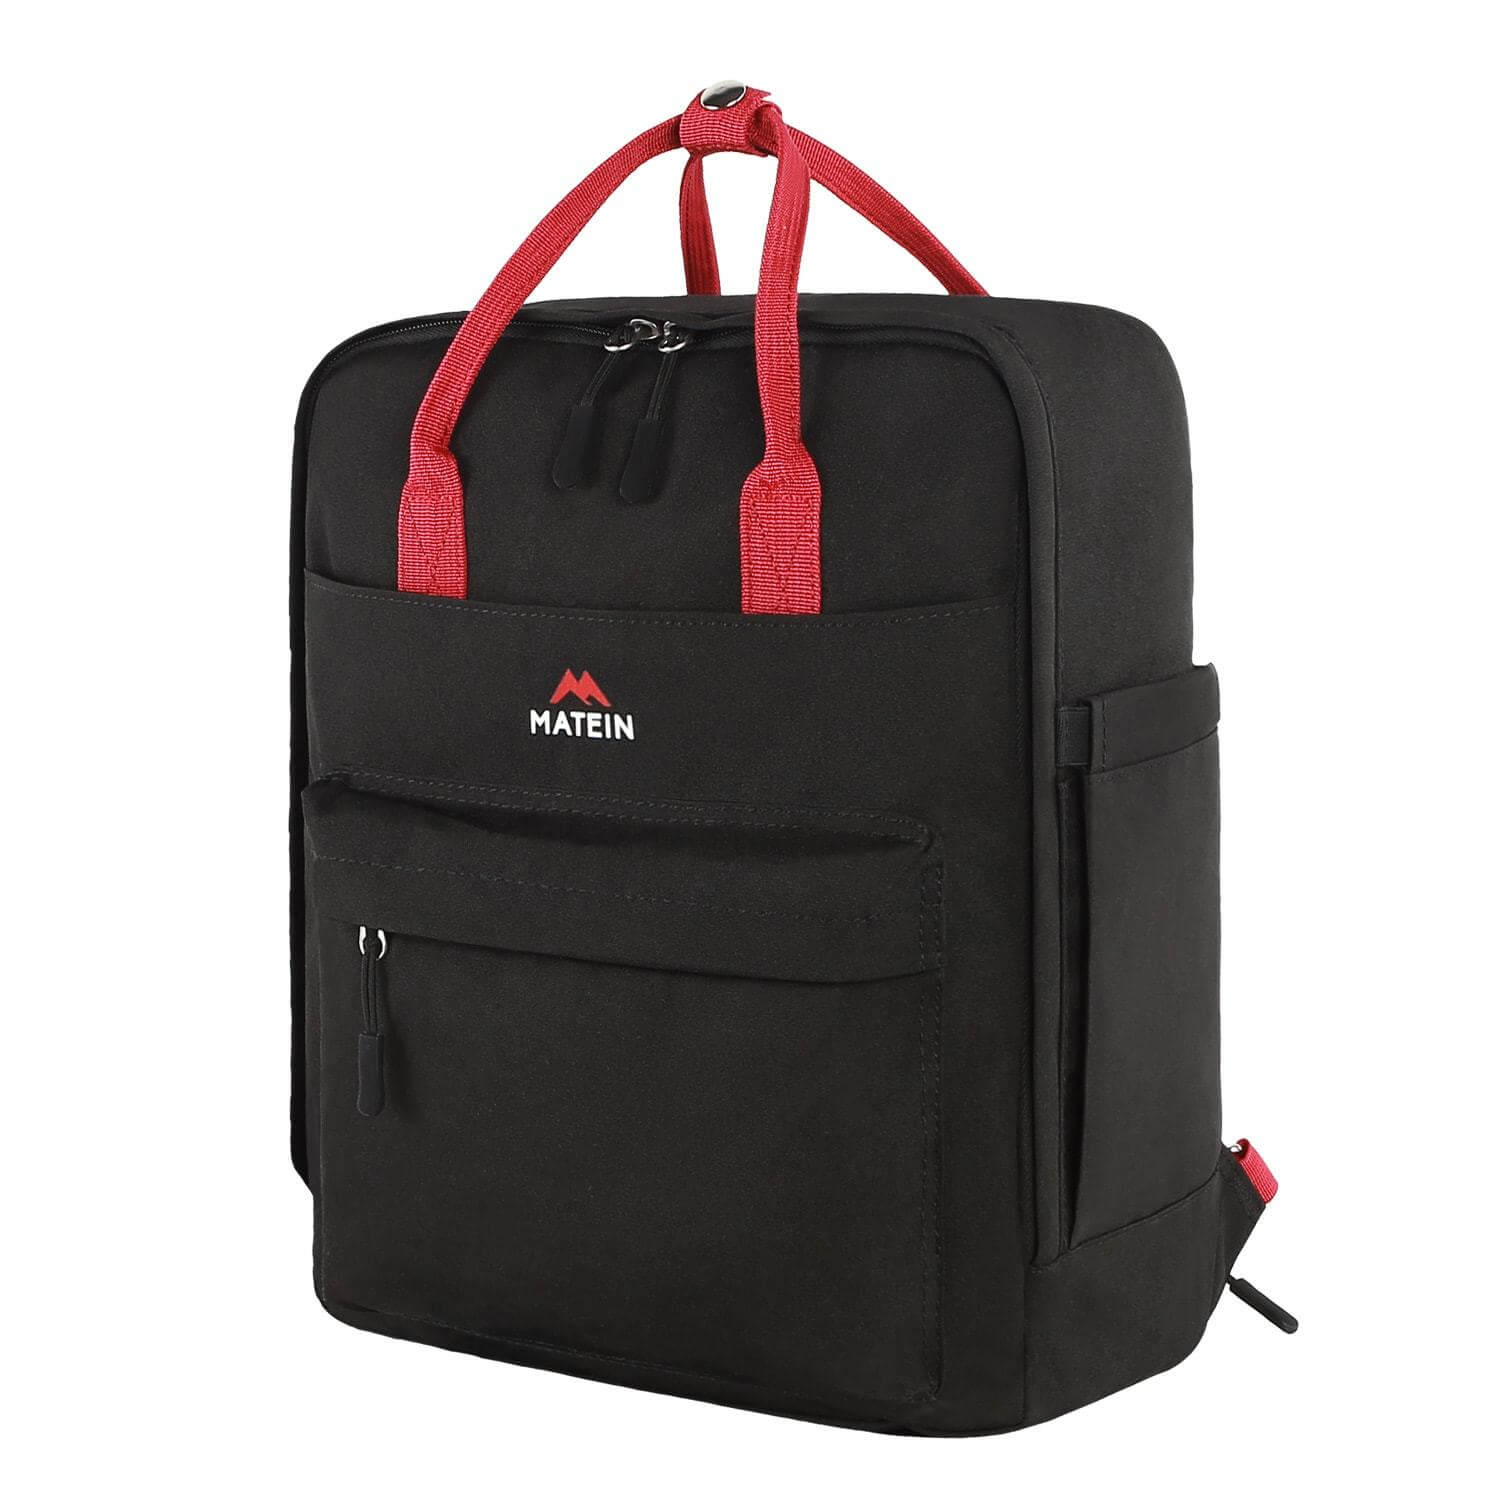 Matein Marvy School Backpack - travel laptop backpack